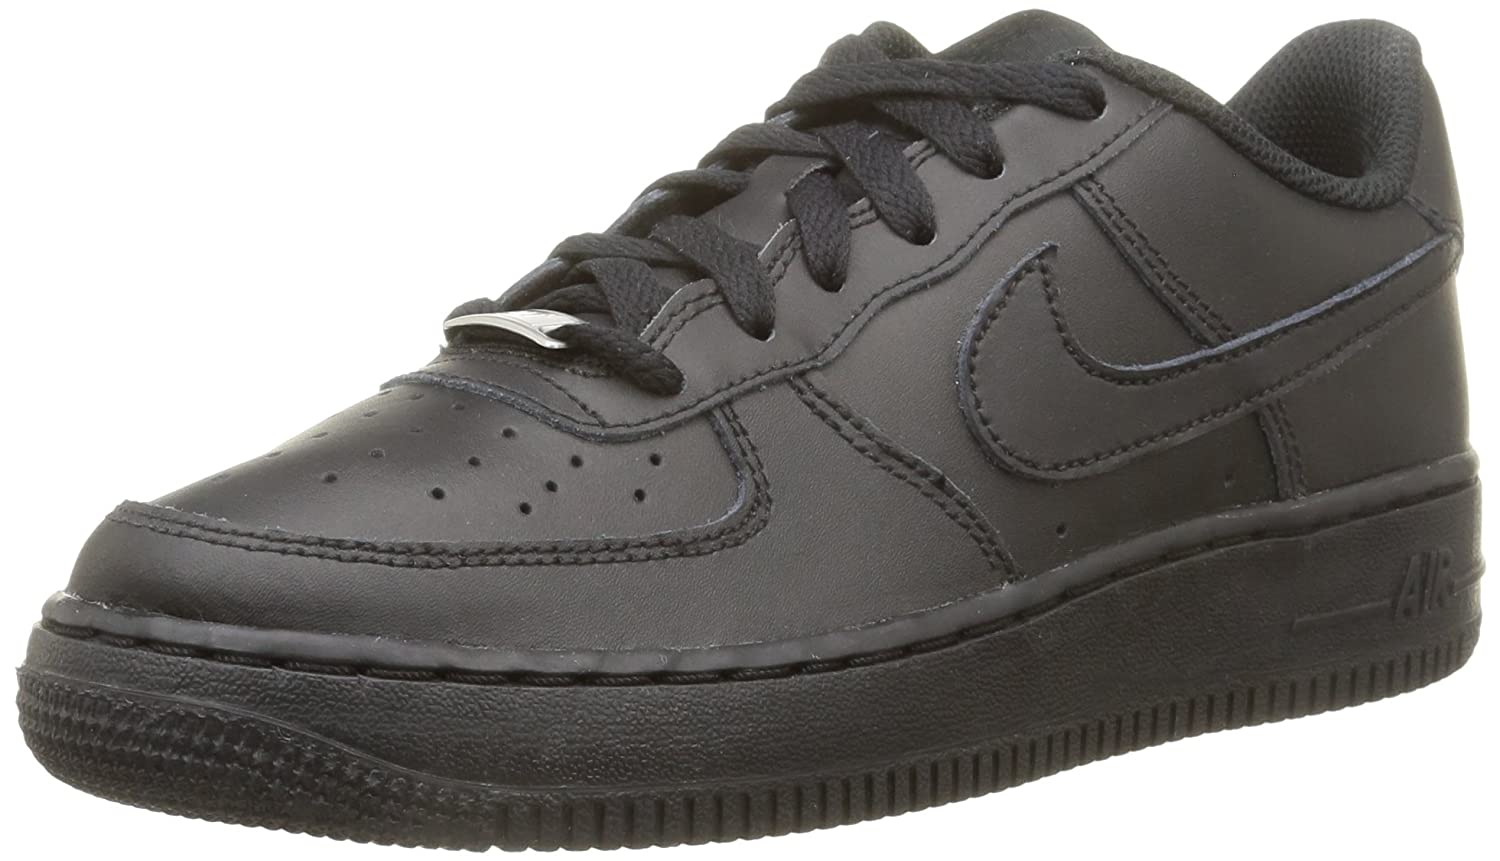 Amazon.com  Nike Air Force 1 Low GS Lifestyle Sneakers  NIKE  Shoes 7d3b28995